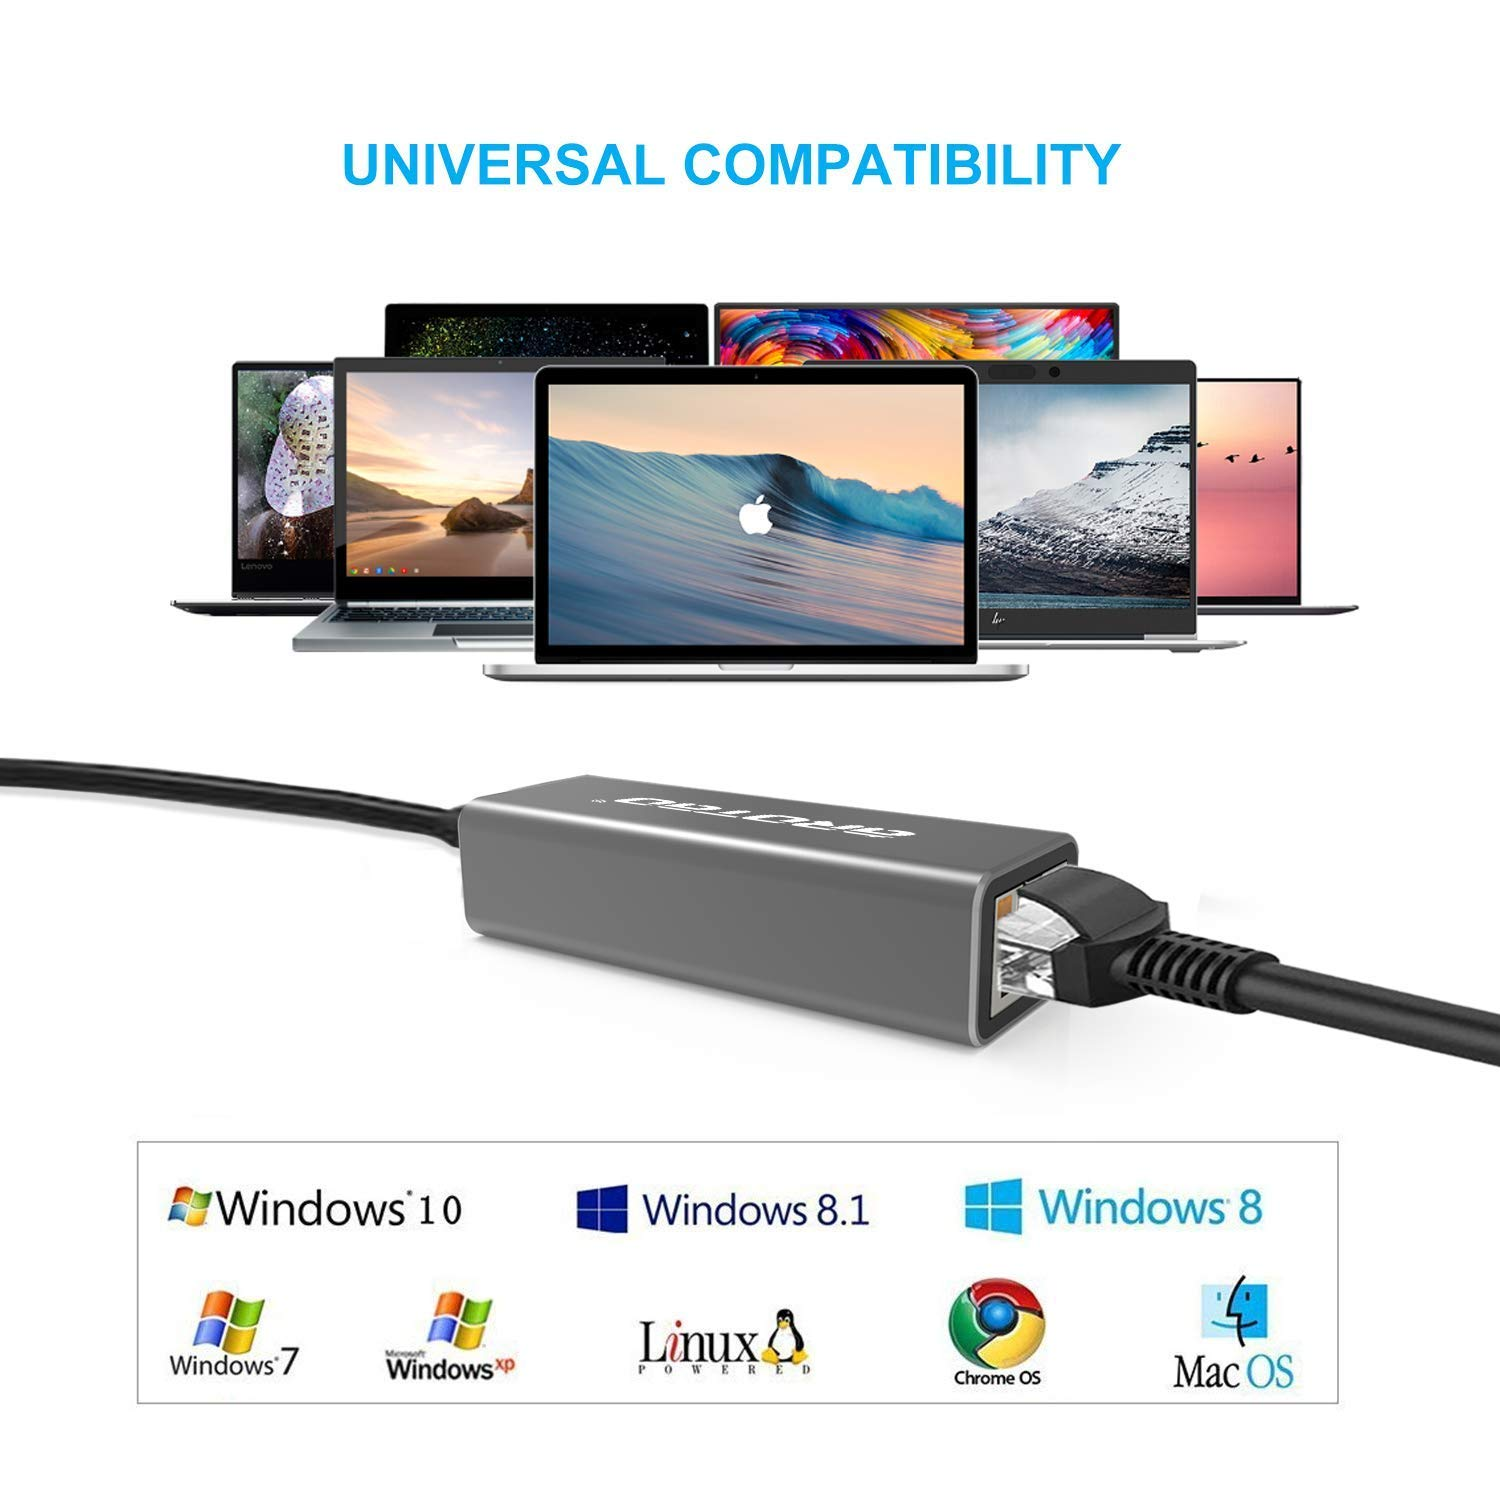 aROTaO USB-C to Ethernet Adapter iPad Pro 2018 Thunderbolt 3// USB 3.1 Type C to RJ45 Gigabit Ethernet LAN Network Adapter Compatible for MacBook,MacBook Pro,ChromeBook Pixel Samsung S8//S9 and More